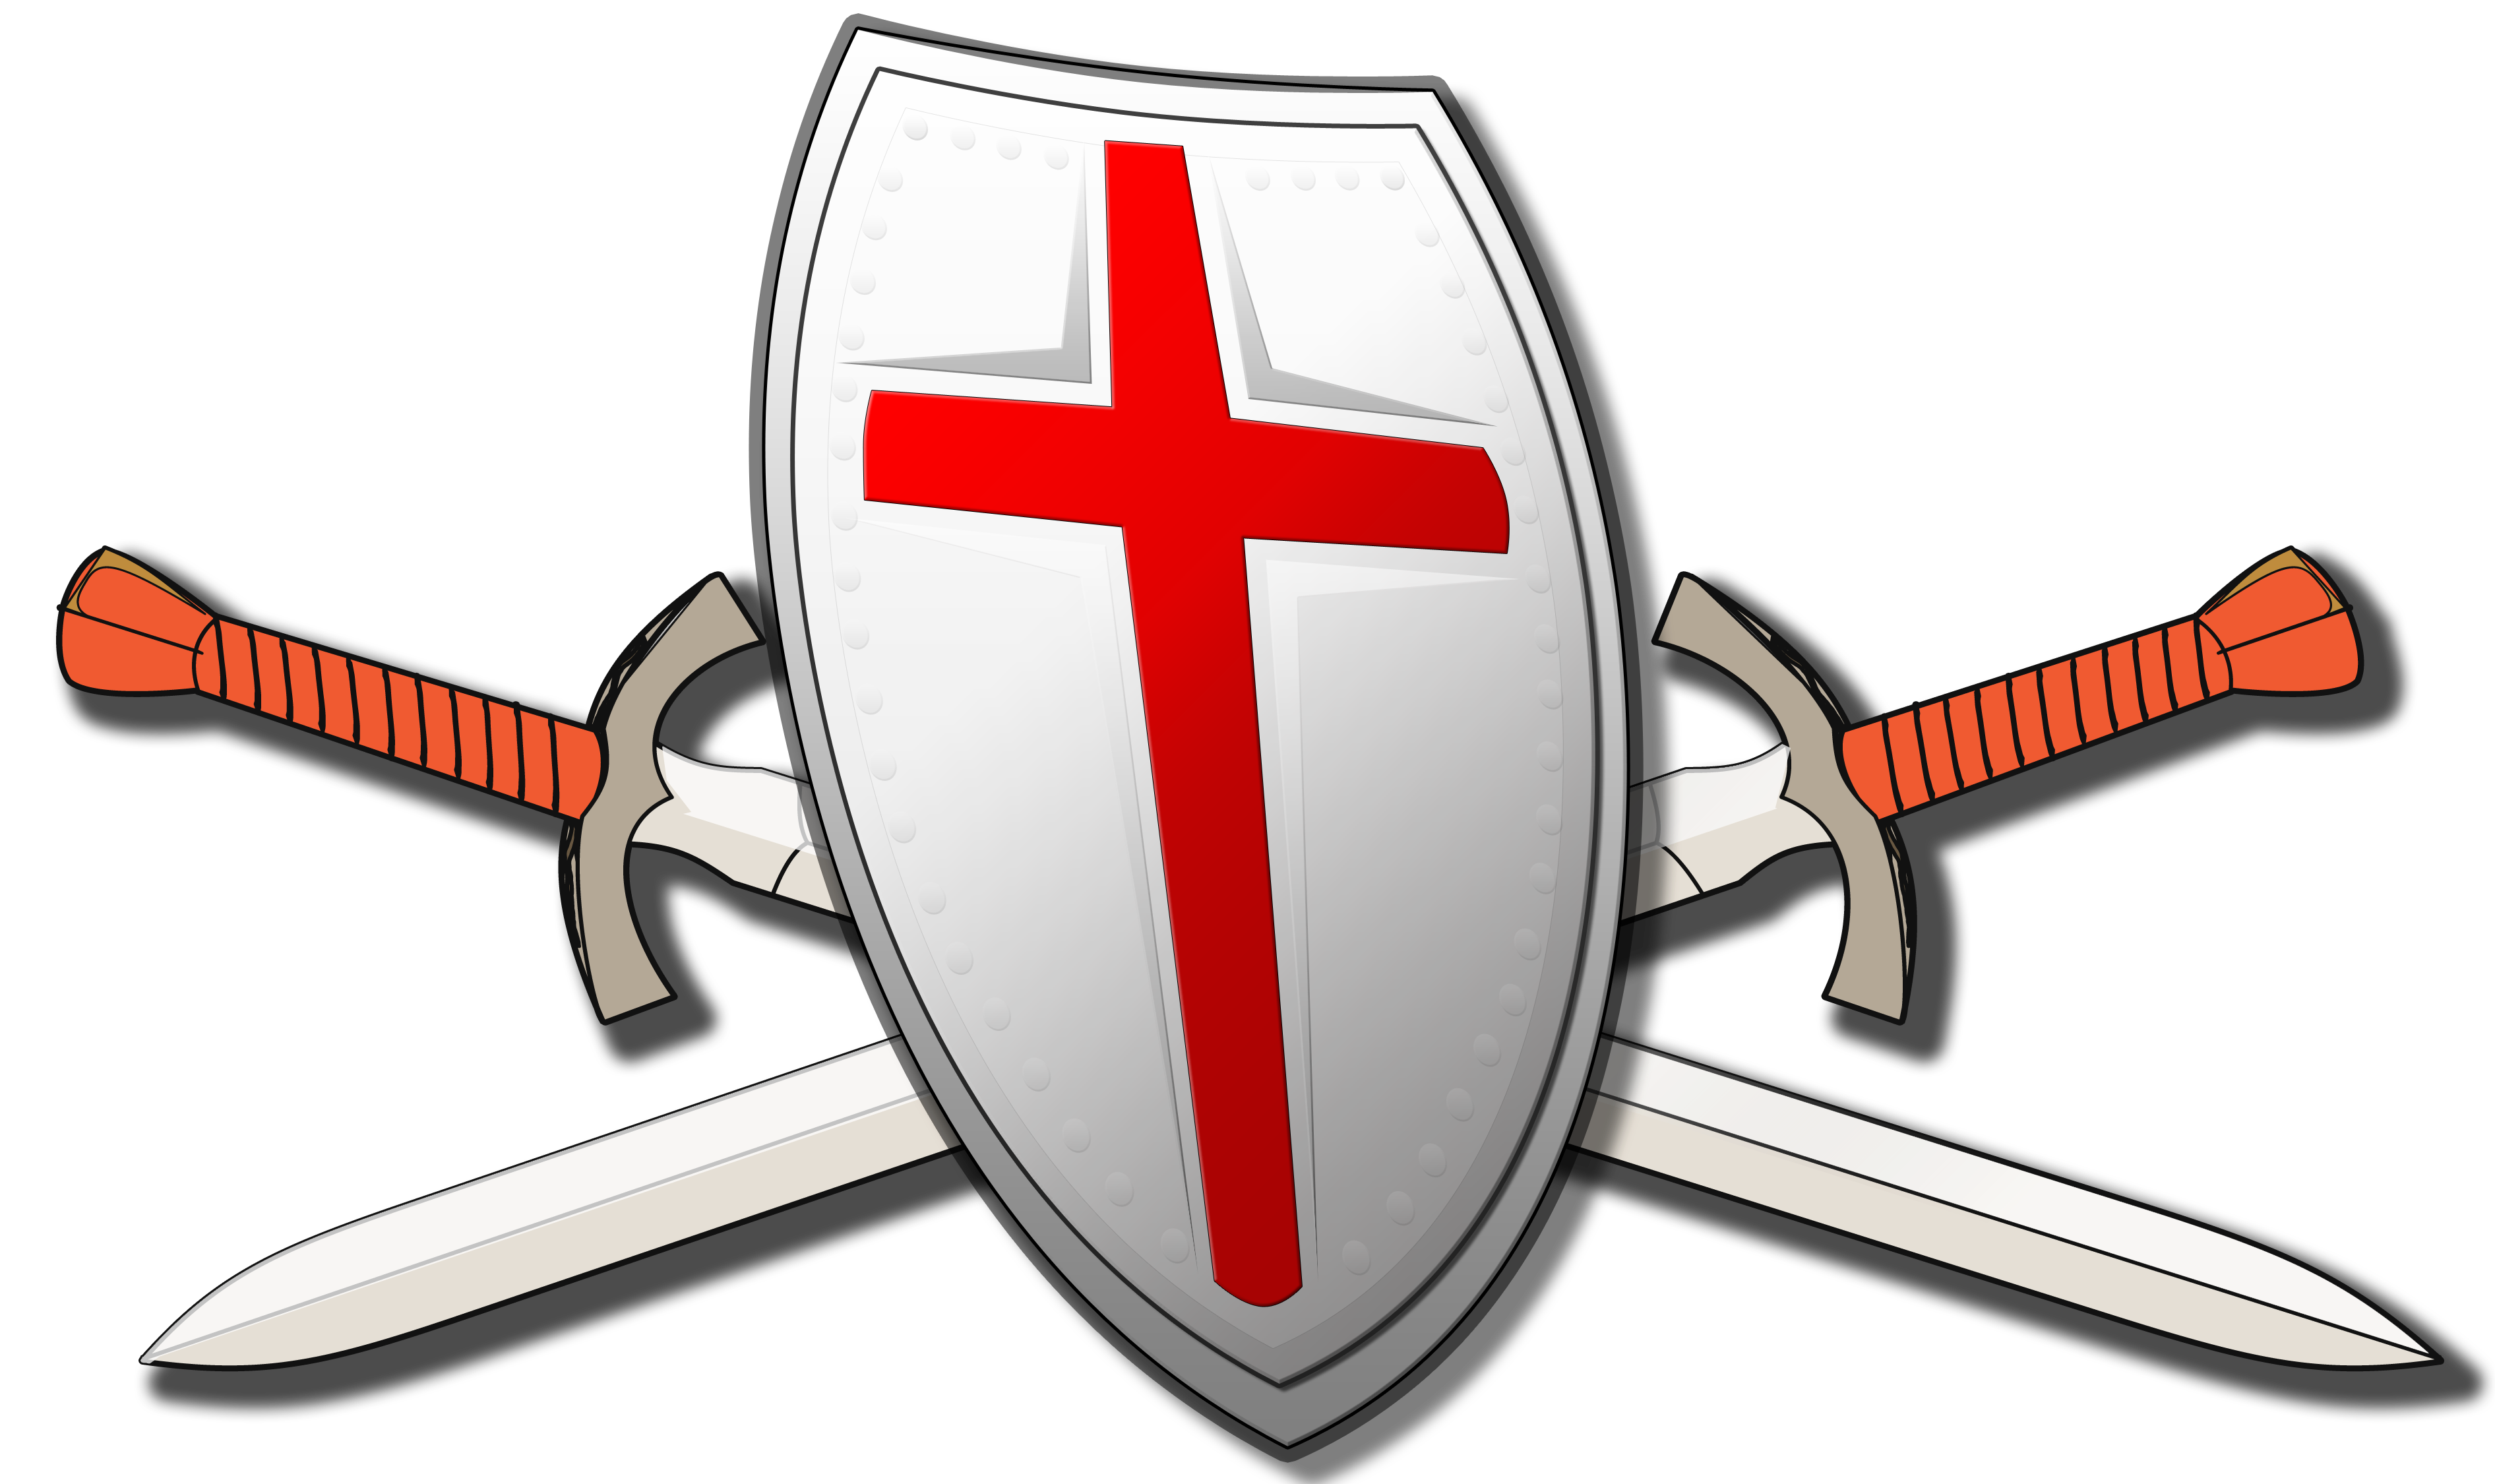 Shield and swords png. About us of faith